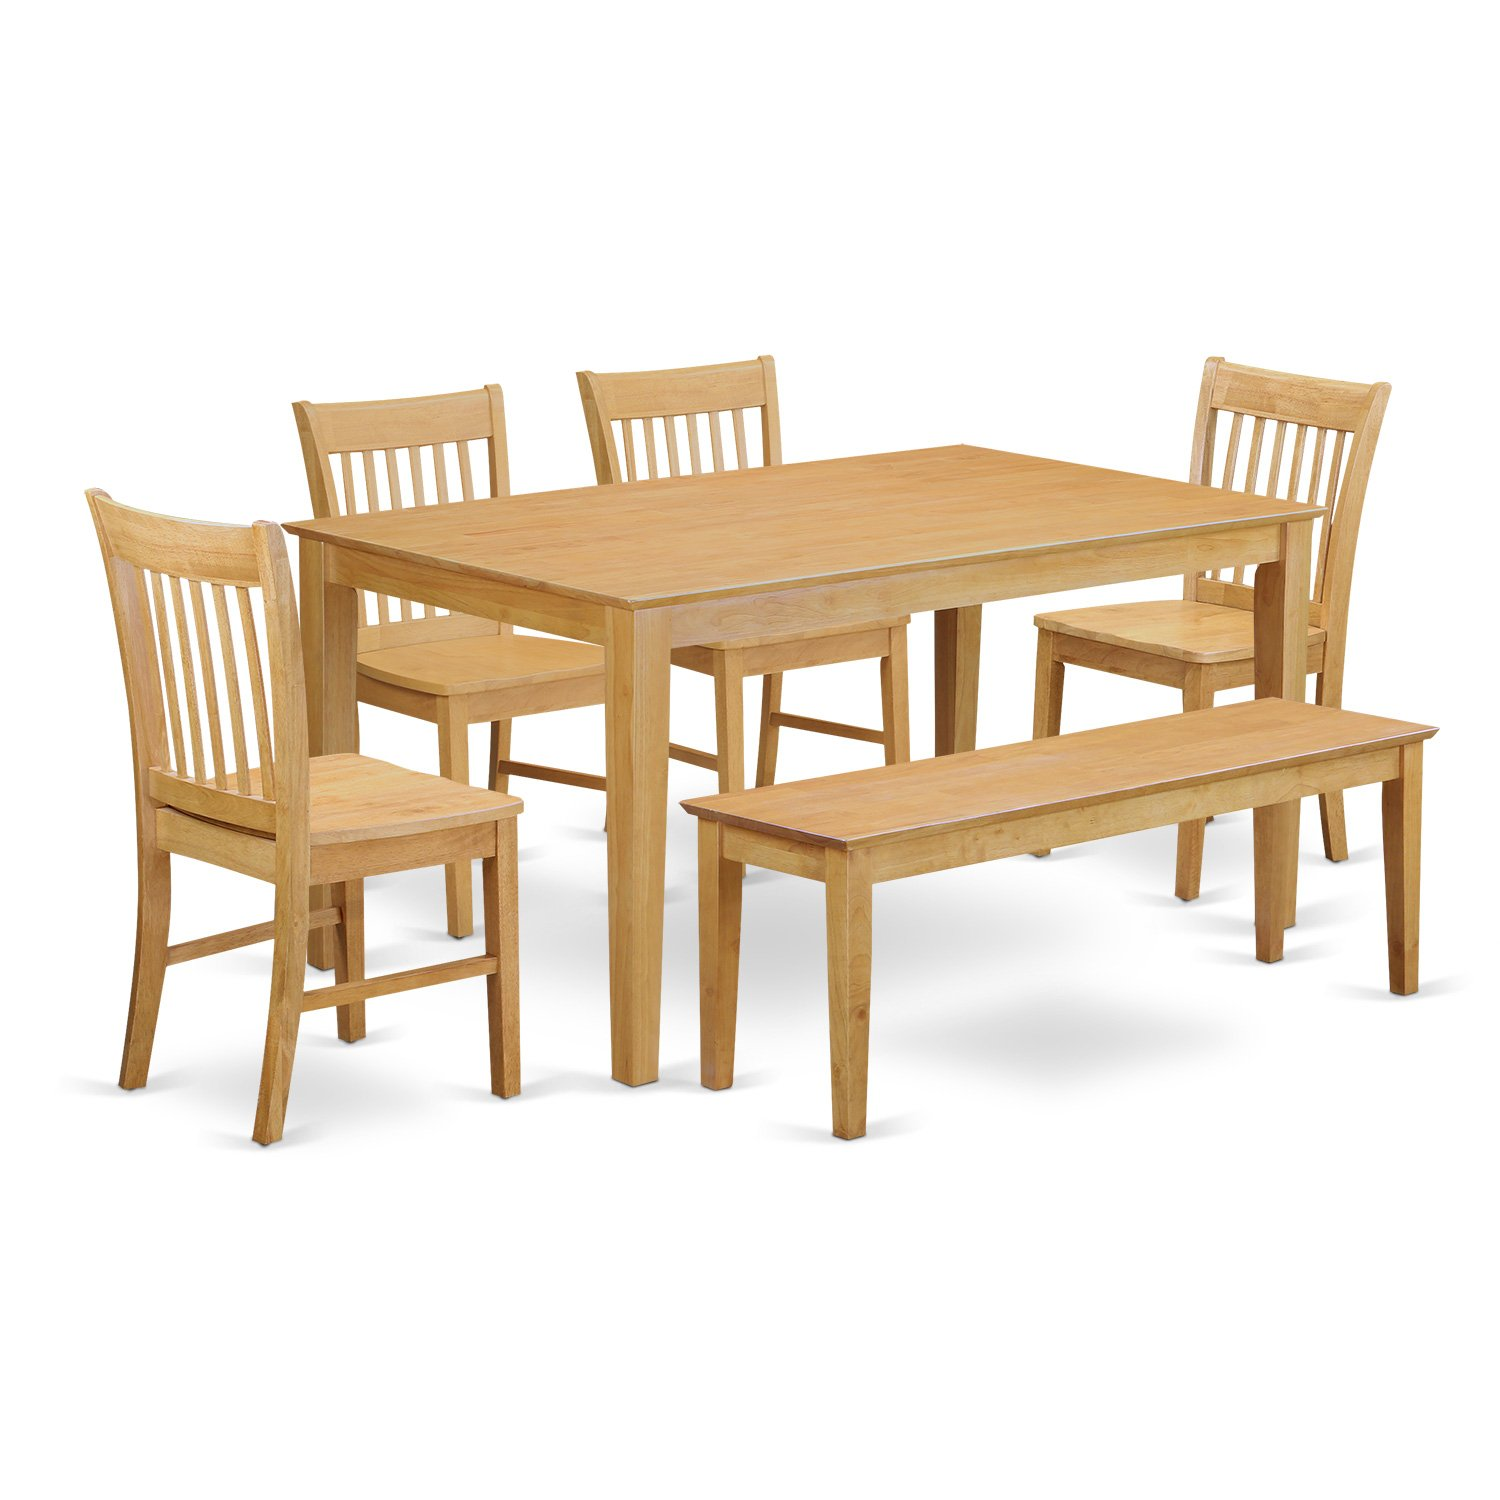 Amazon.com: East West Furniture CANO6 OAK W 6 Piece Dining Table Set:  Kitchen U0026 Dining